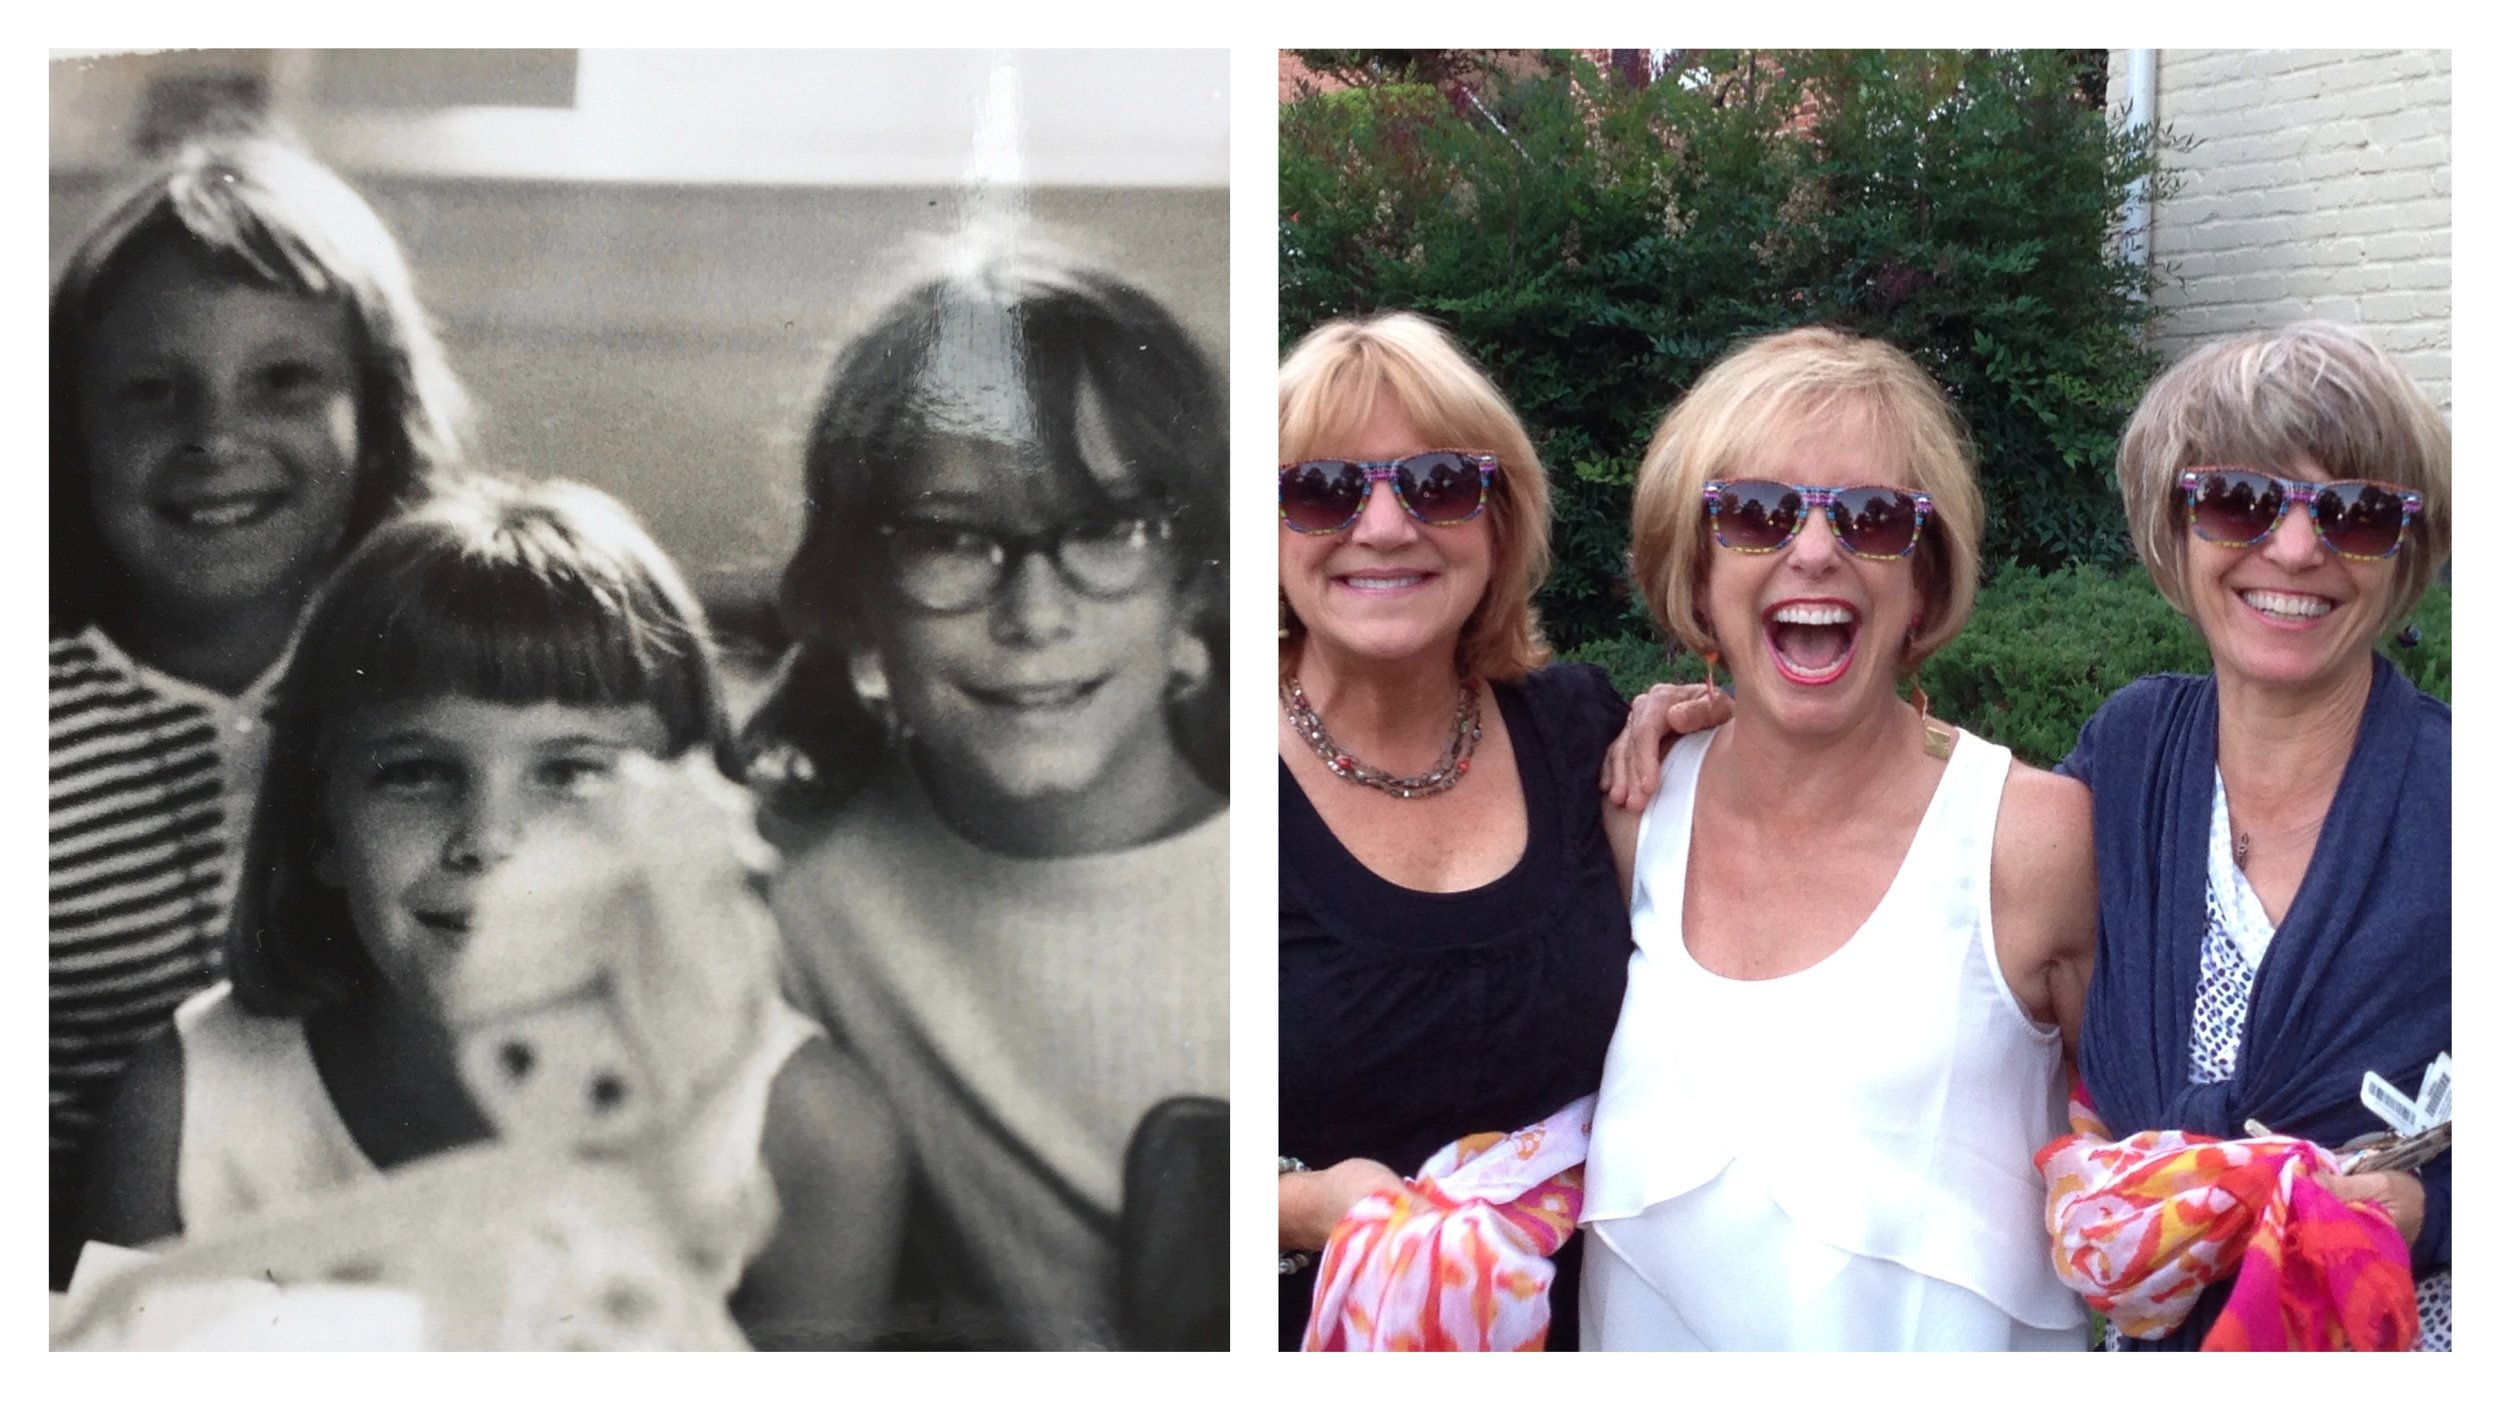 Then and now. Lots of laughter has been shared with these long-term friends! Back then, we listened to a record album of the Smothers Brothers over and over which repeatedly made us giggle!